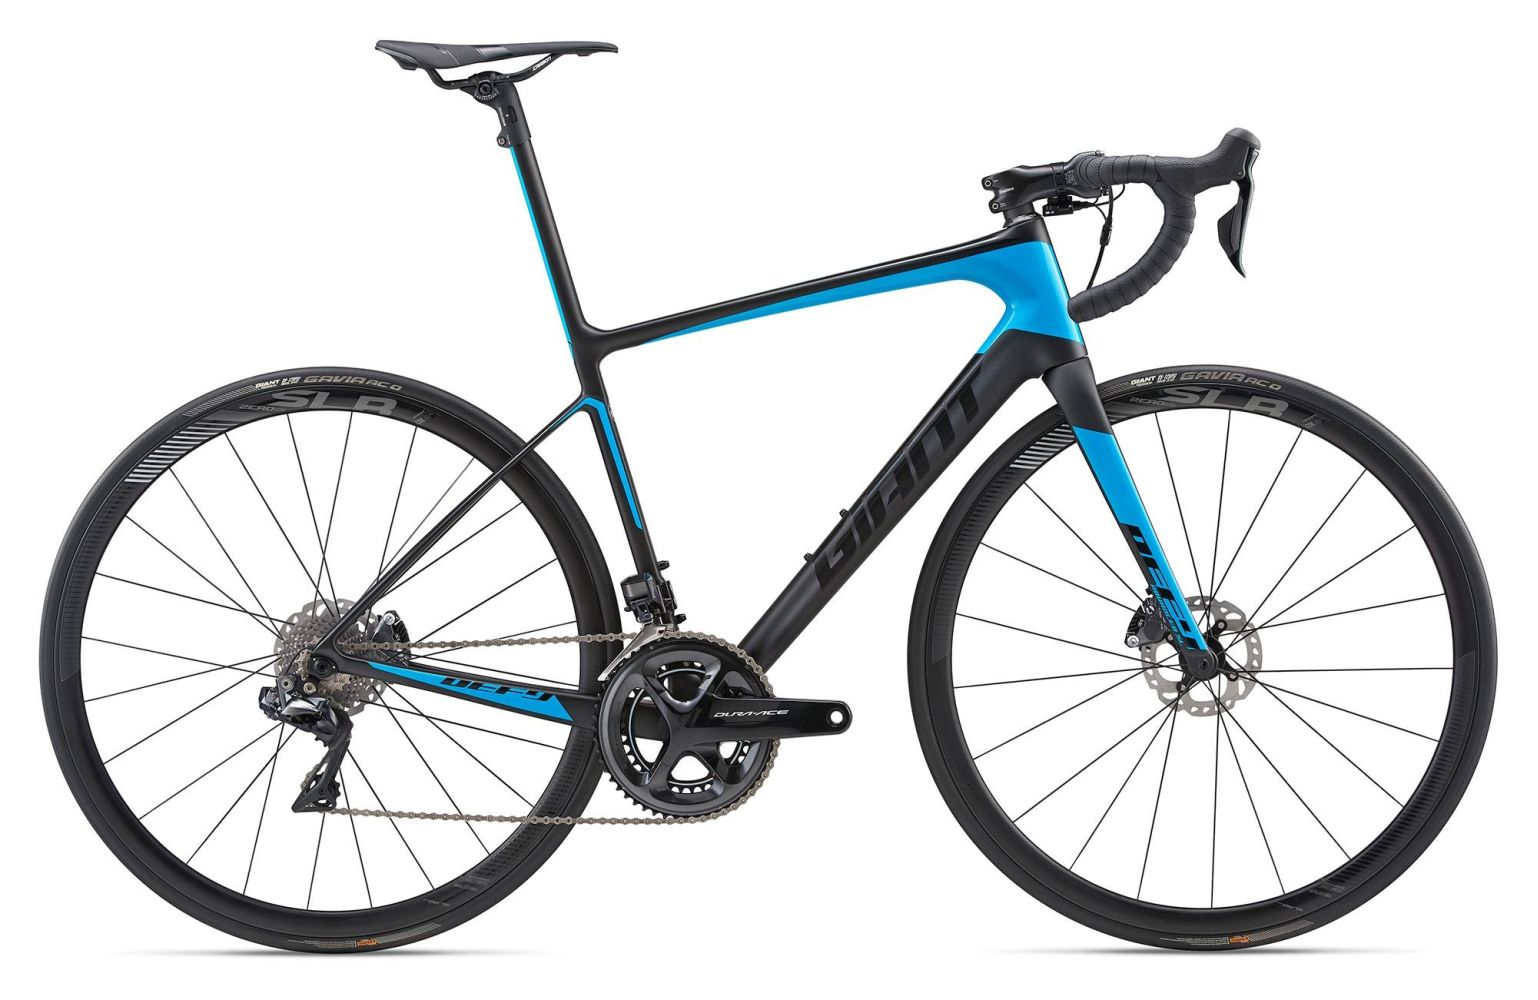 2018 Defy Advanced Sl Giant Bicycles Official Site